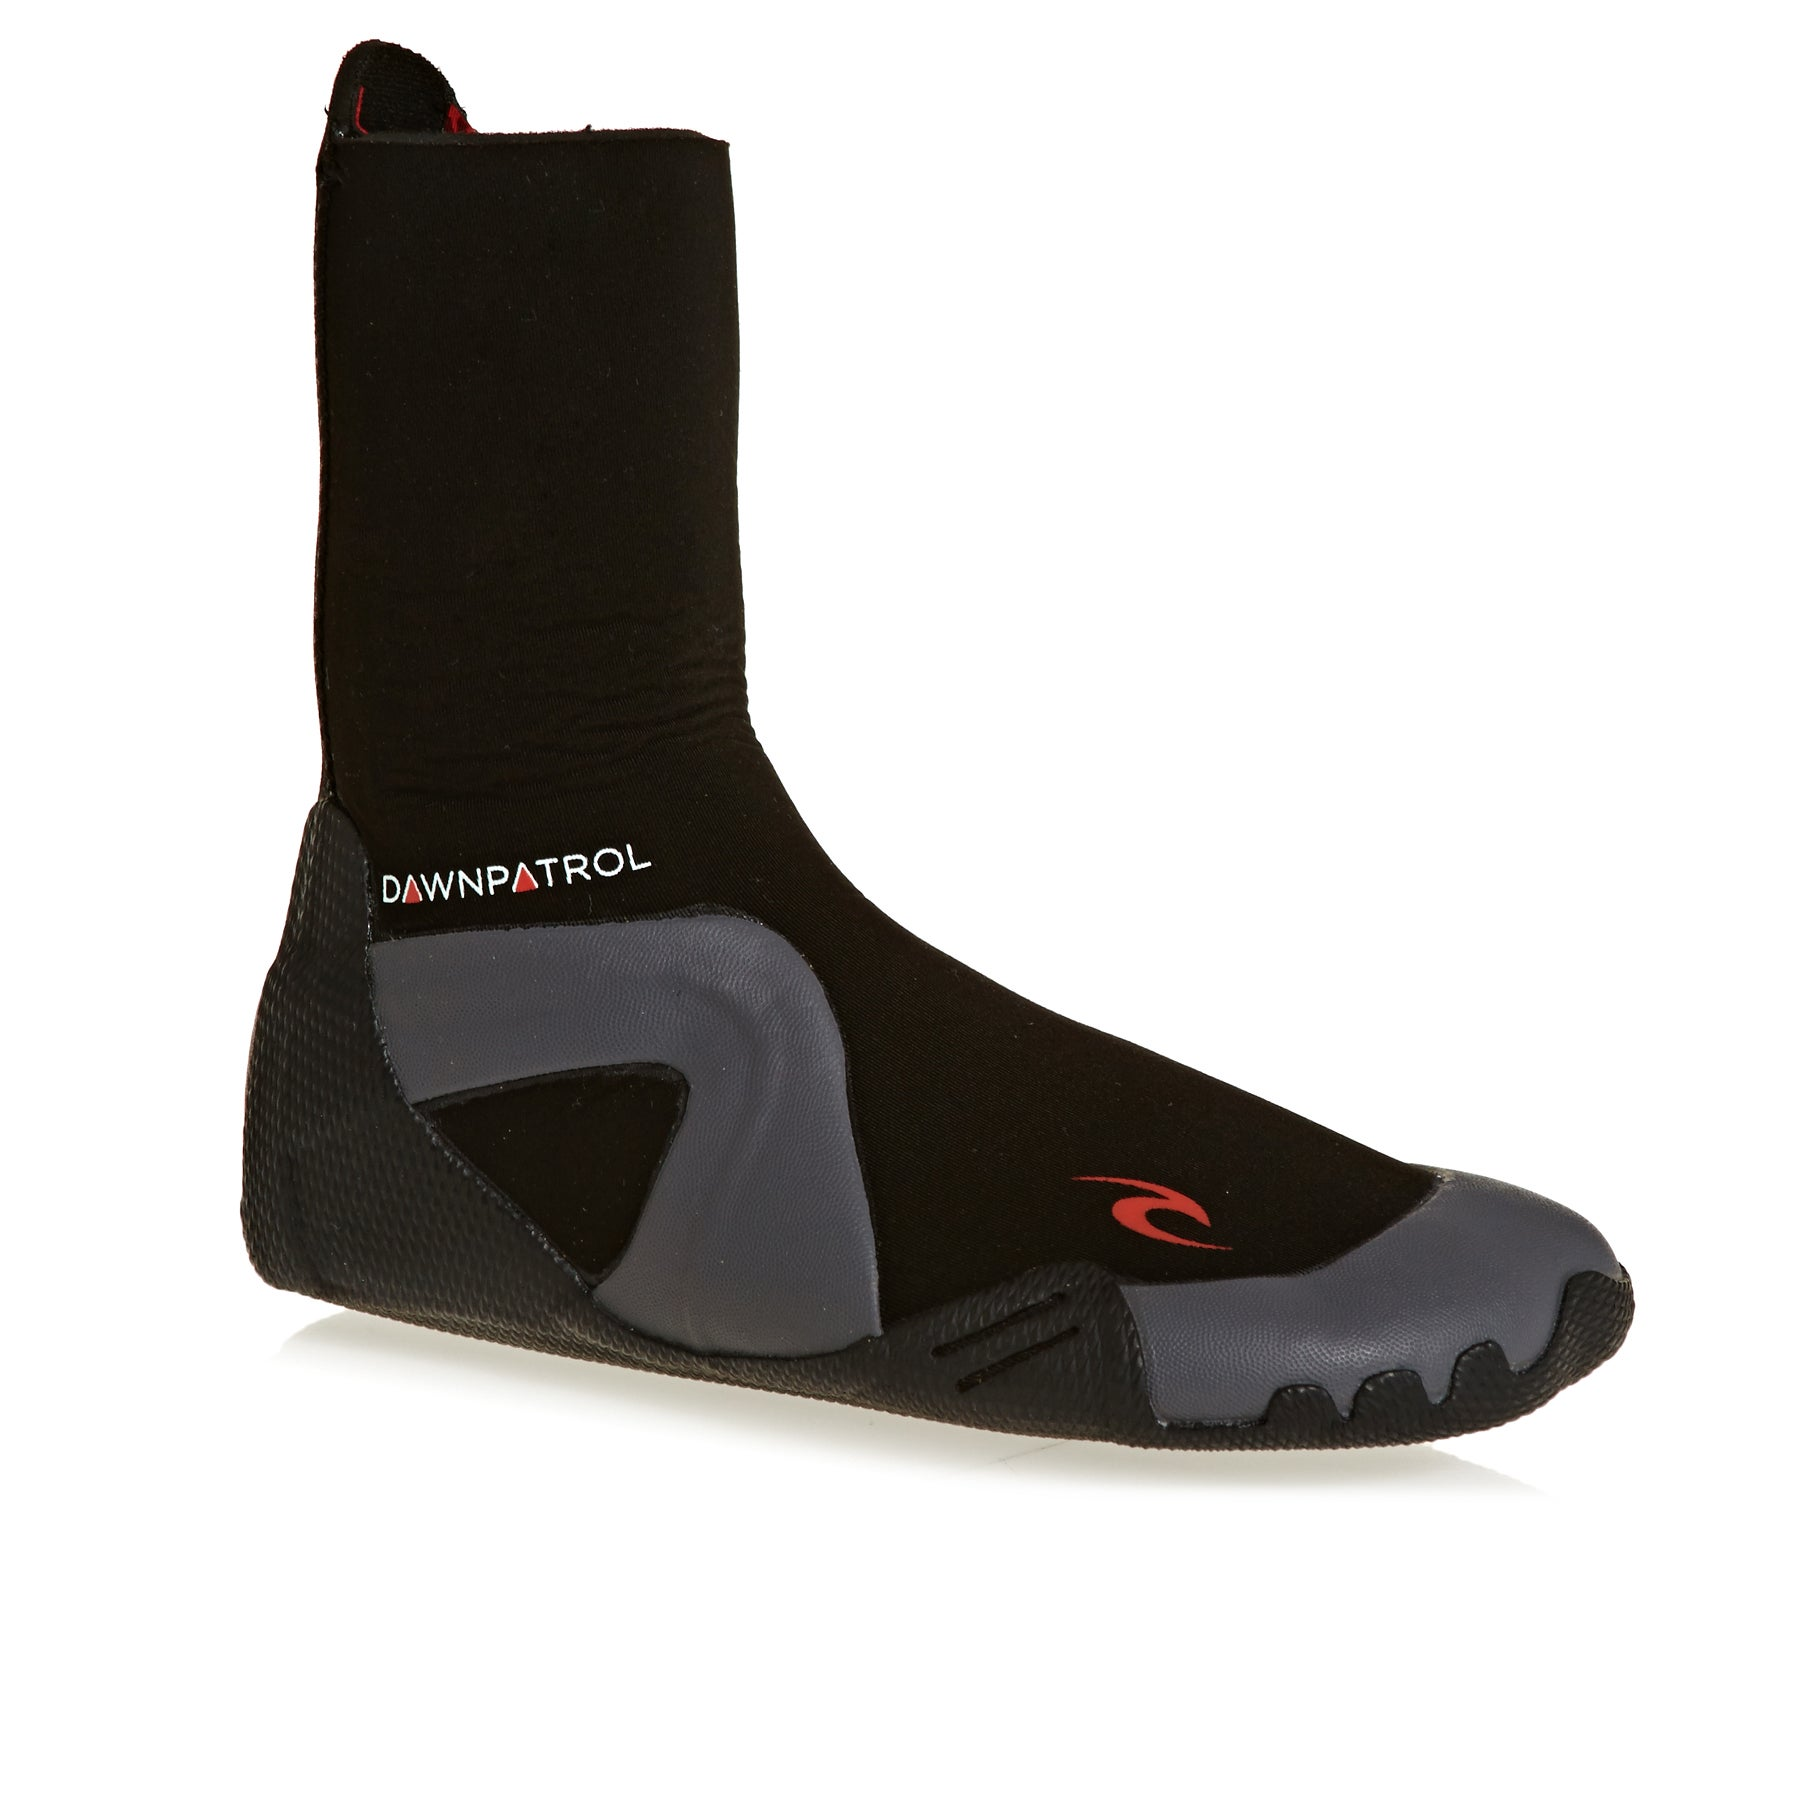 Rip Curl D/patrol 5mm Round Toe Bo Wetsuit Boots